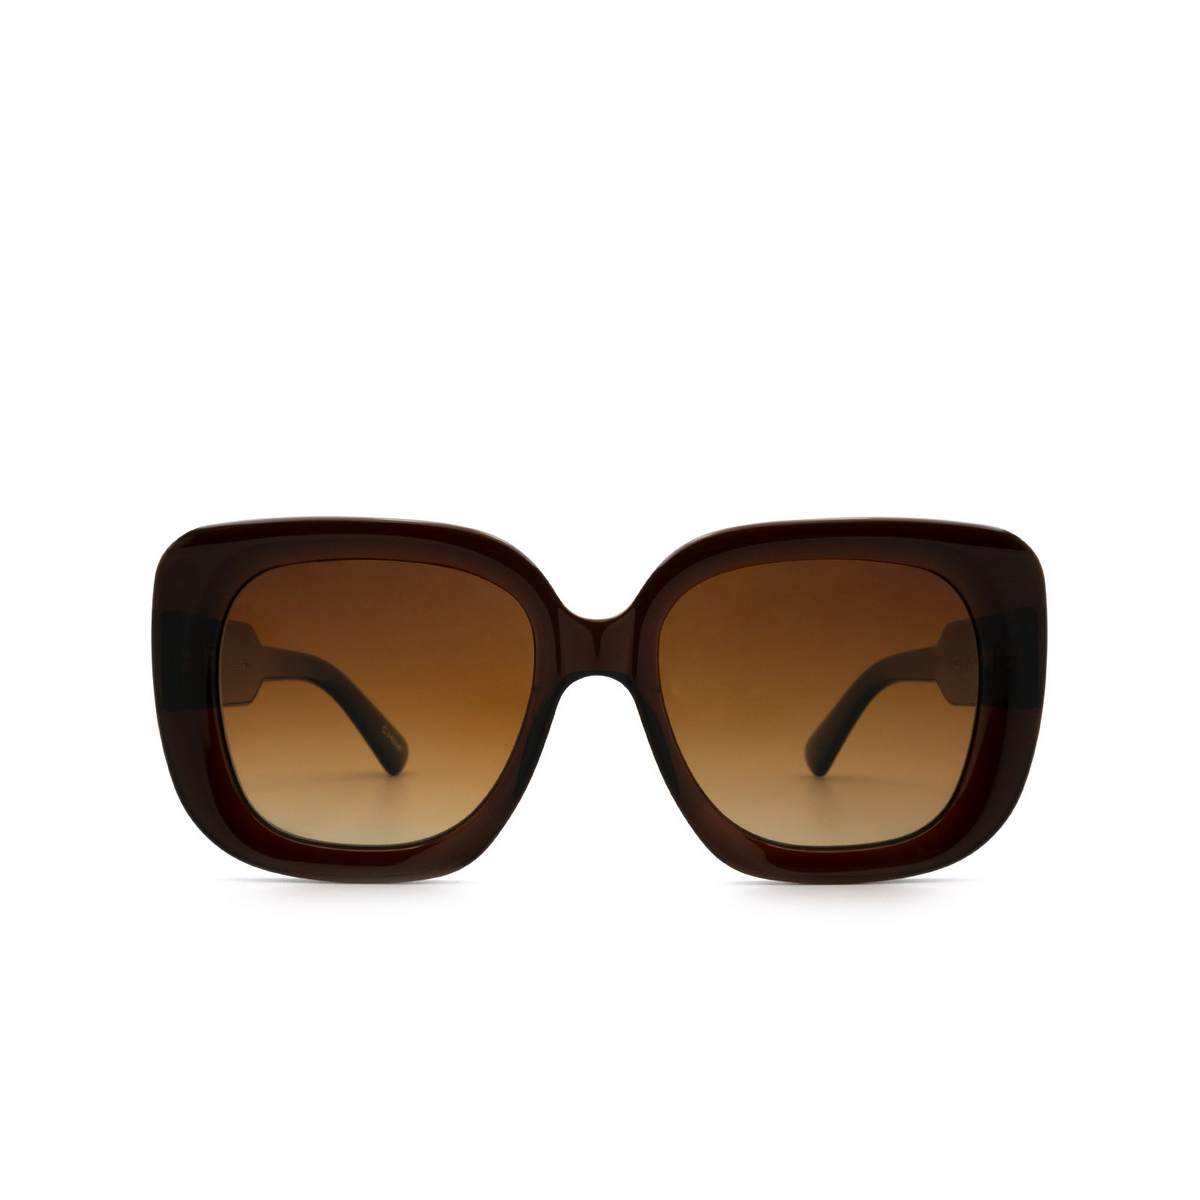 Chimi® Square Sunglasses: 10 color Brown - front view.